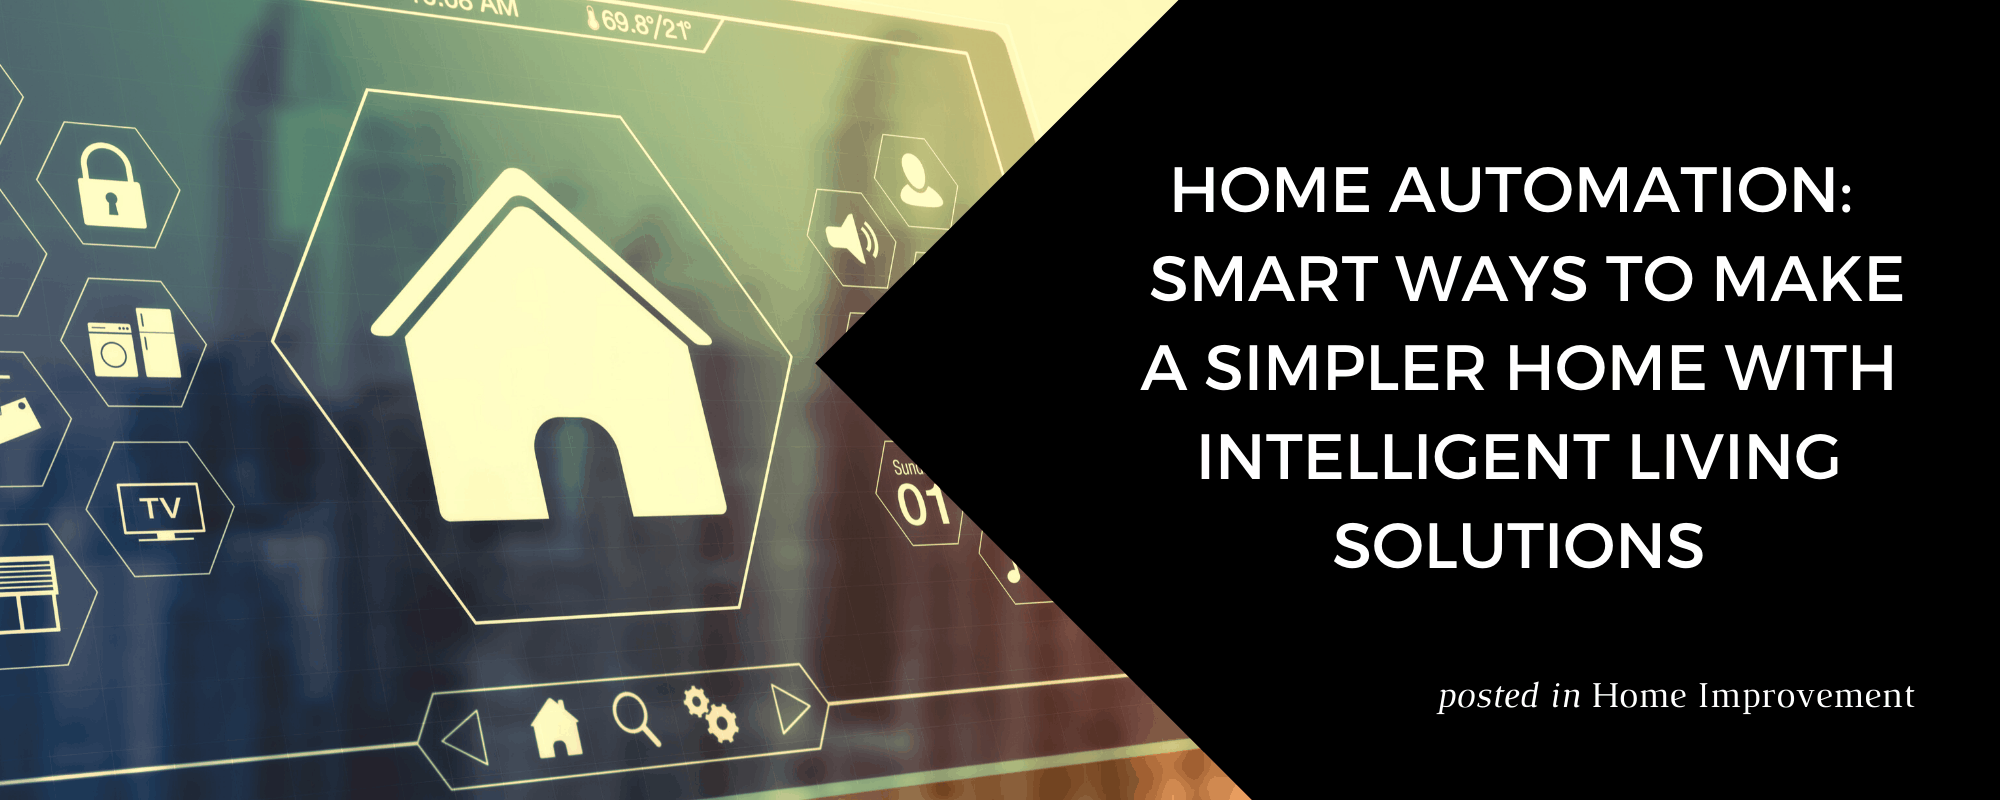 Home Automation - Smart Ways to Make A Simpler Home by Stacy Snively at ZVilleHomes.com